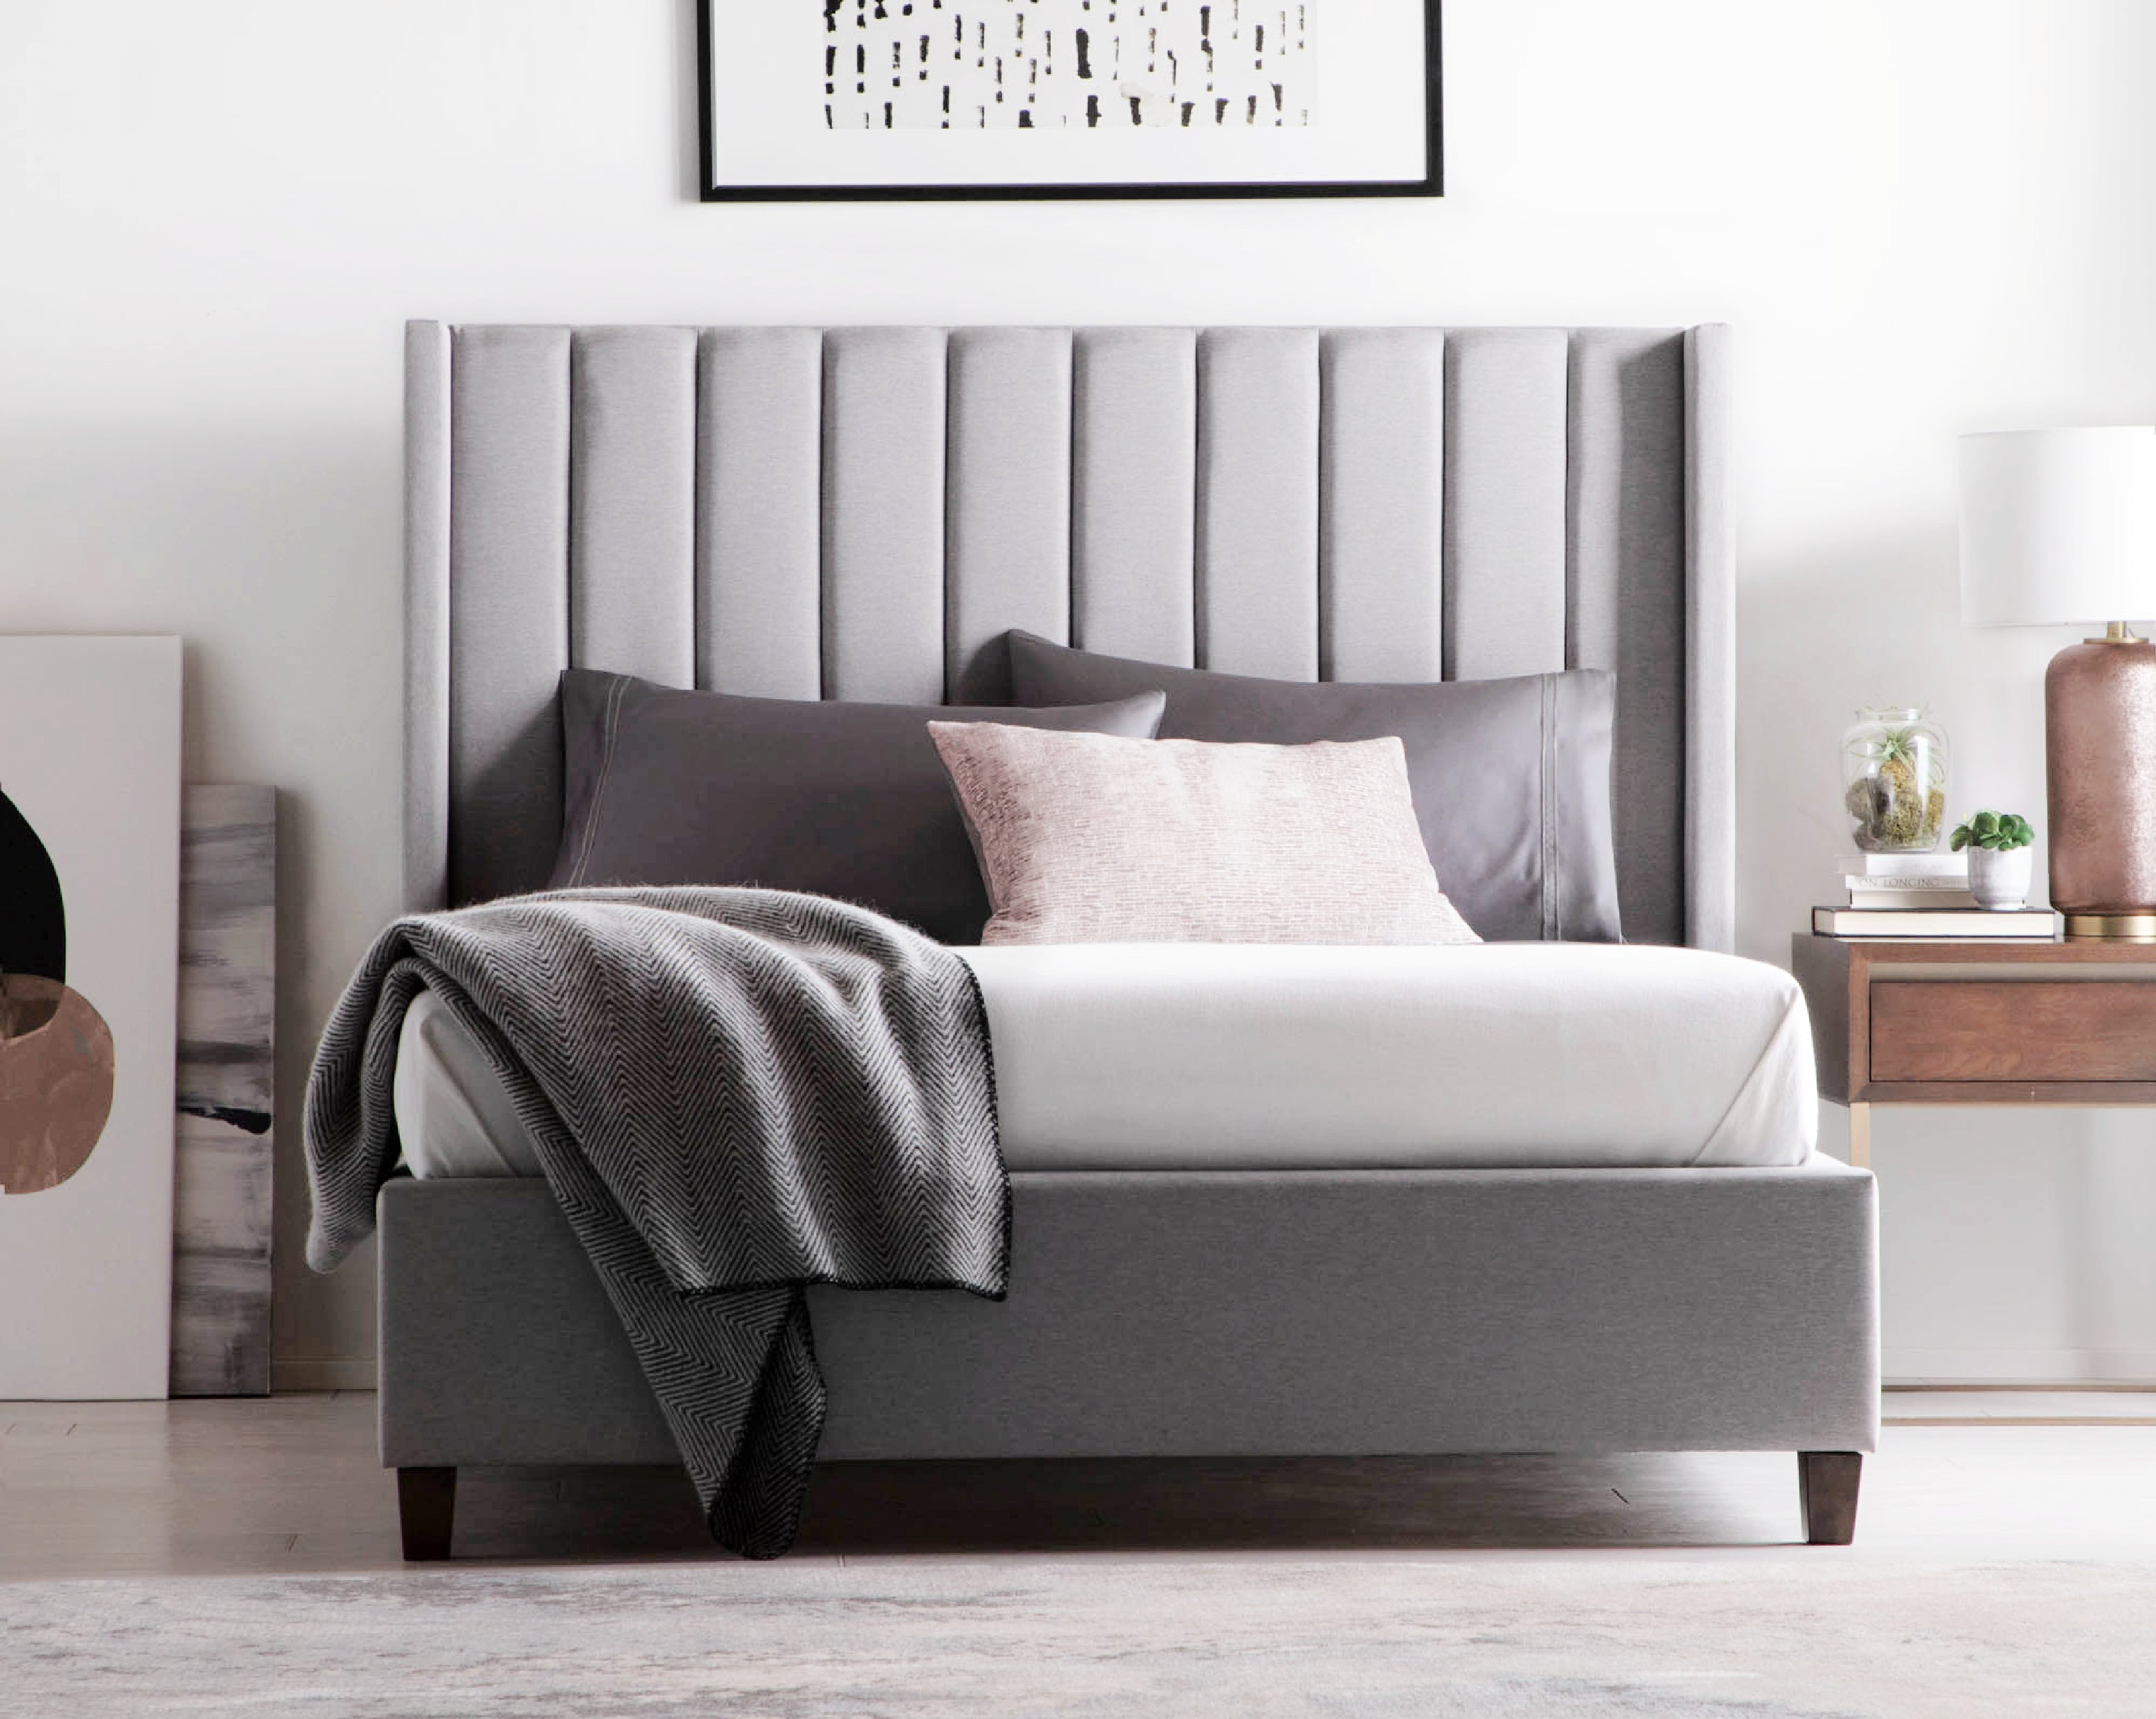 <Great for discerning shopper who want the best,, hope signature collection, luxury and comfort, memory foam mattress, hybrid mattress, supportive mattress, made in the USA>